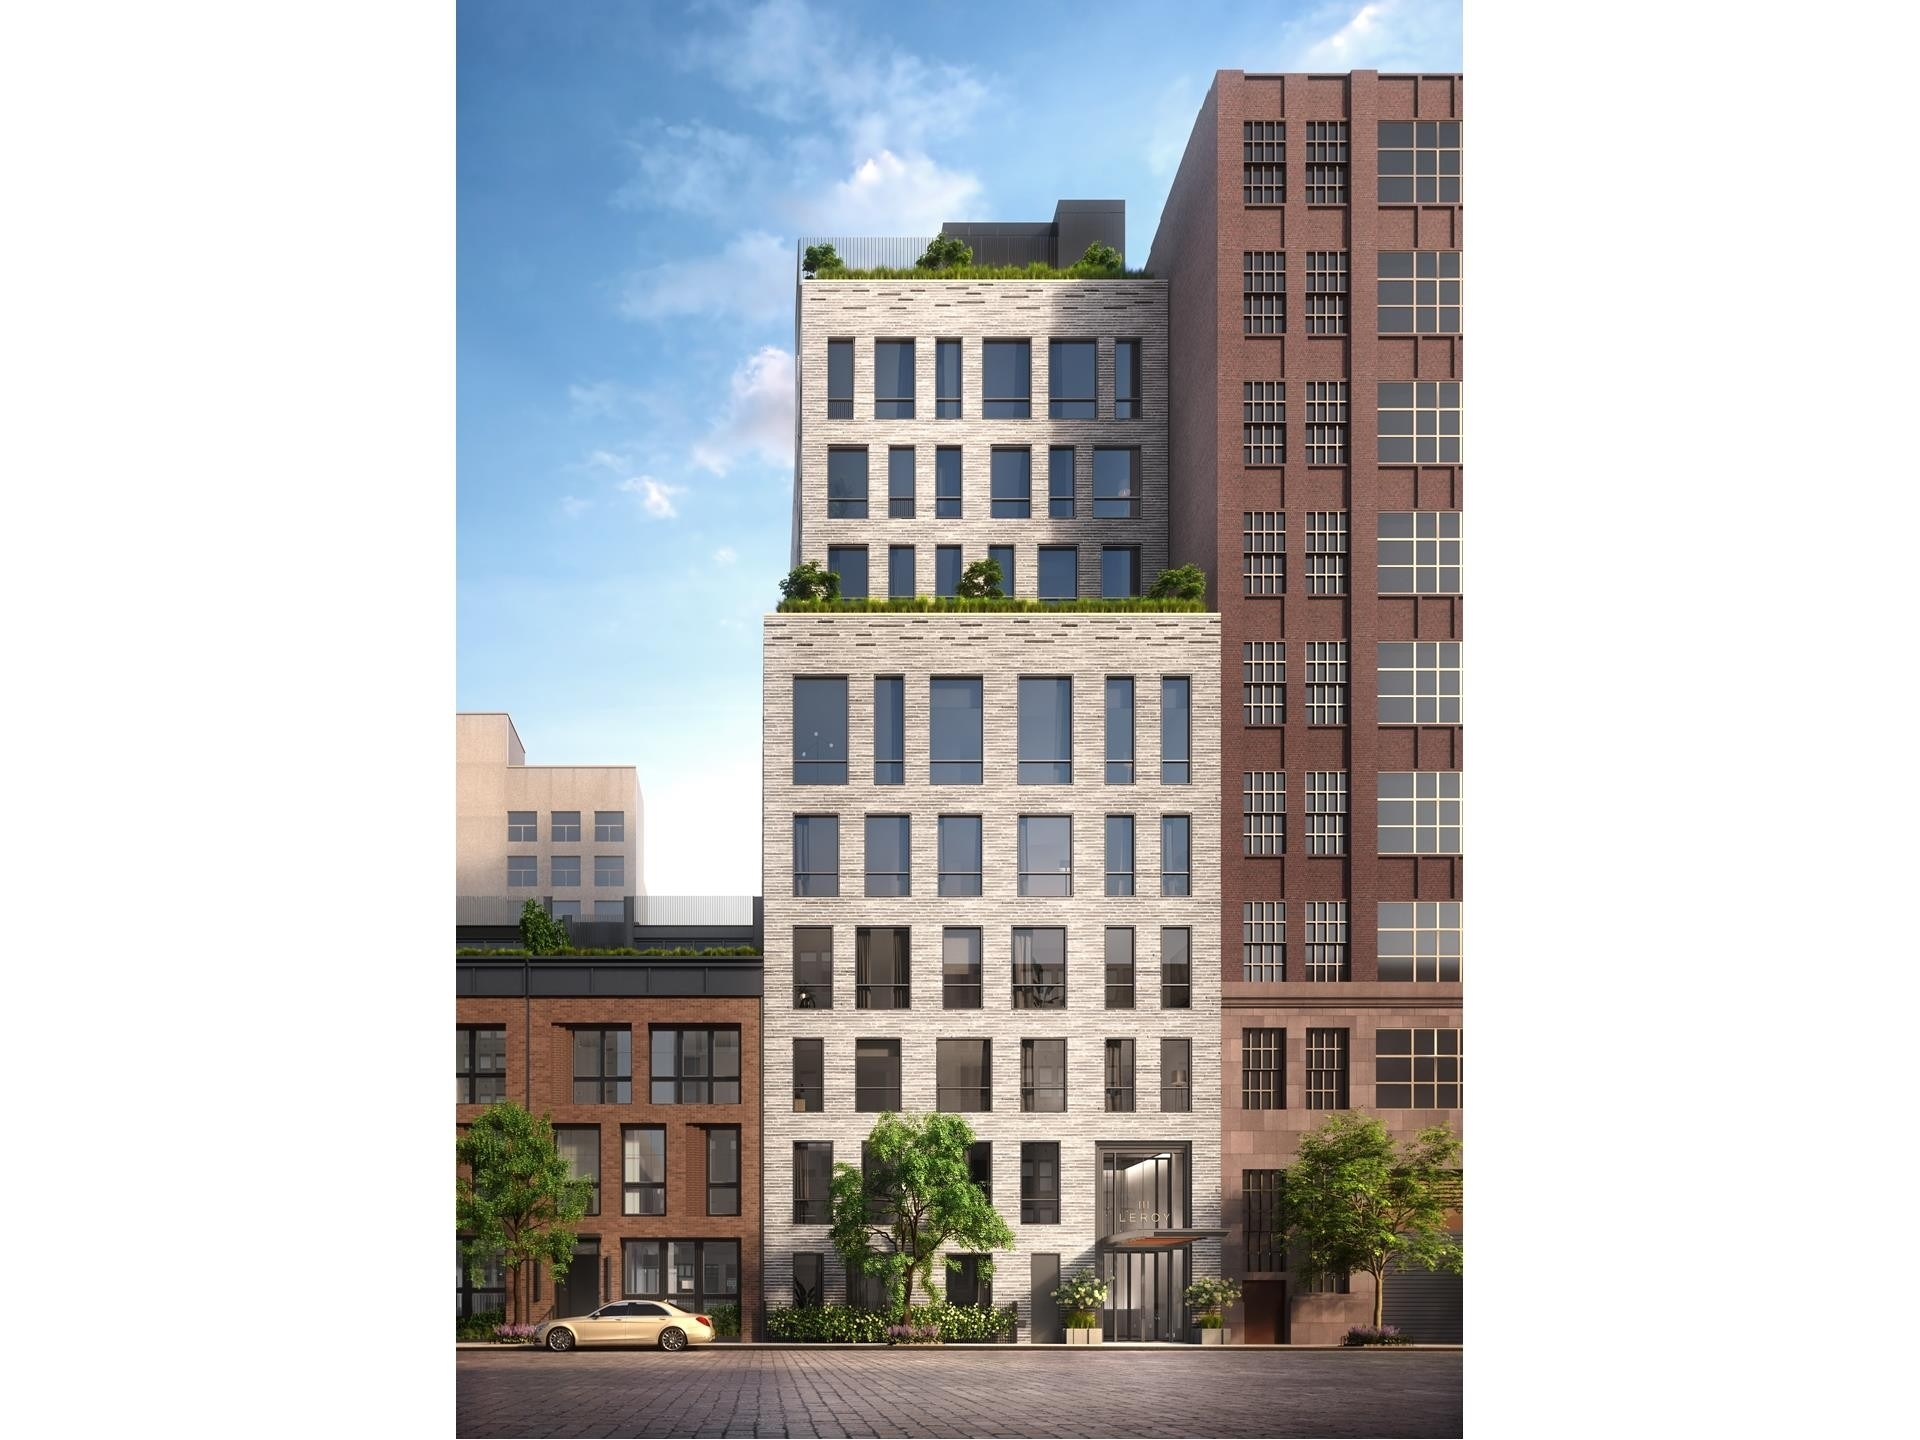 18. Condominiums 為 特賣 在 111 Leroy St, 5 West Village, 纽约, NY 10014